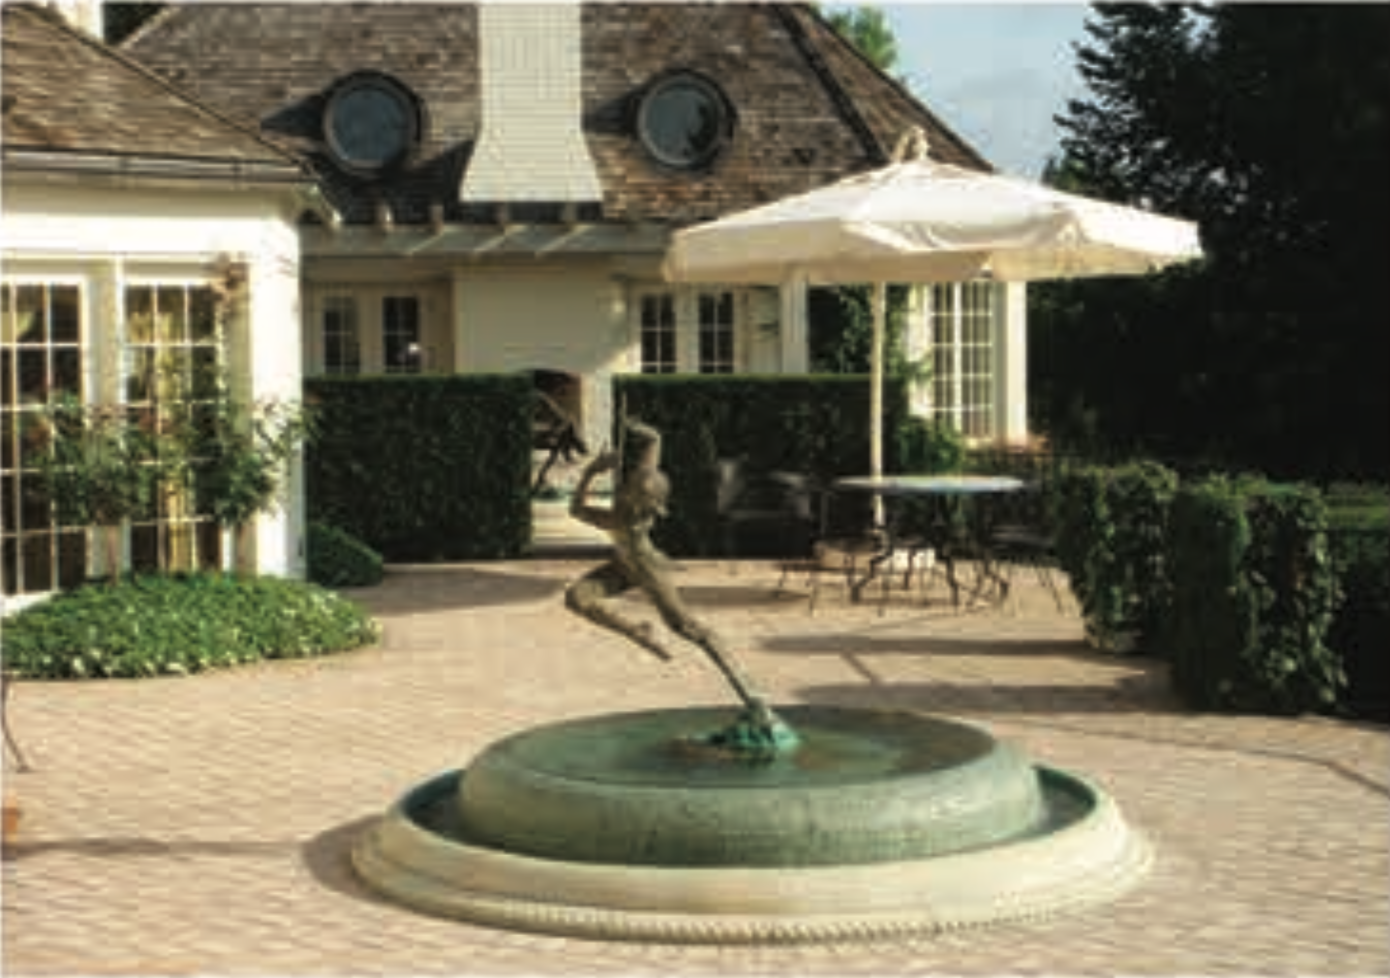 Water fountain feature in front of a home